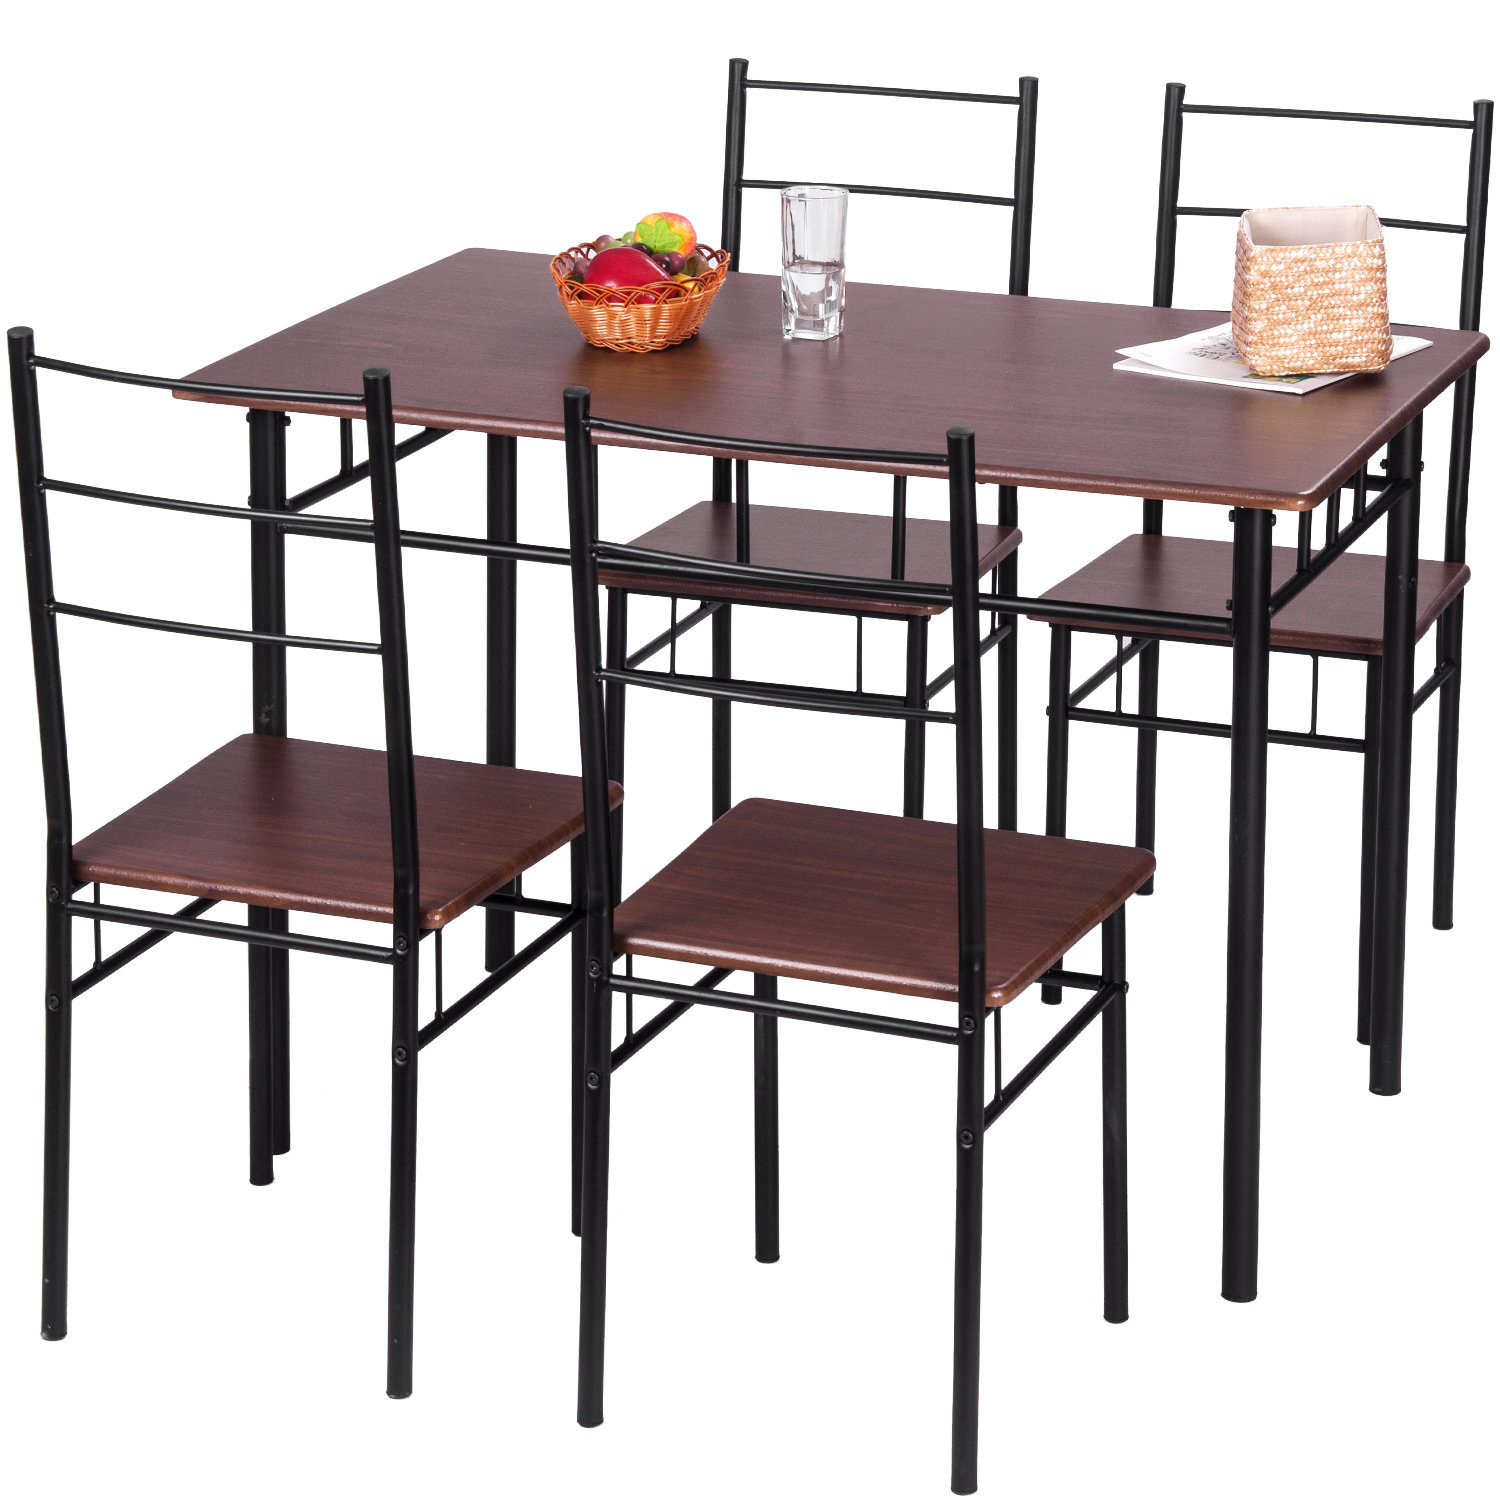 5 Piece Breakfast Nook Dining Set Inside Best And Newest Turnalar 5 Piece Dining Sets (View 14 of 20)